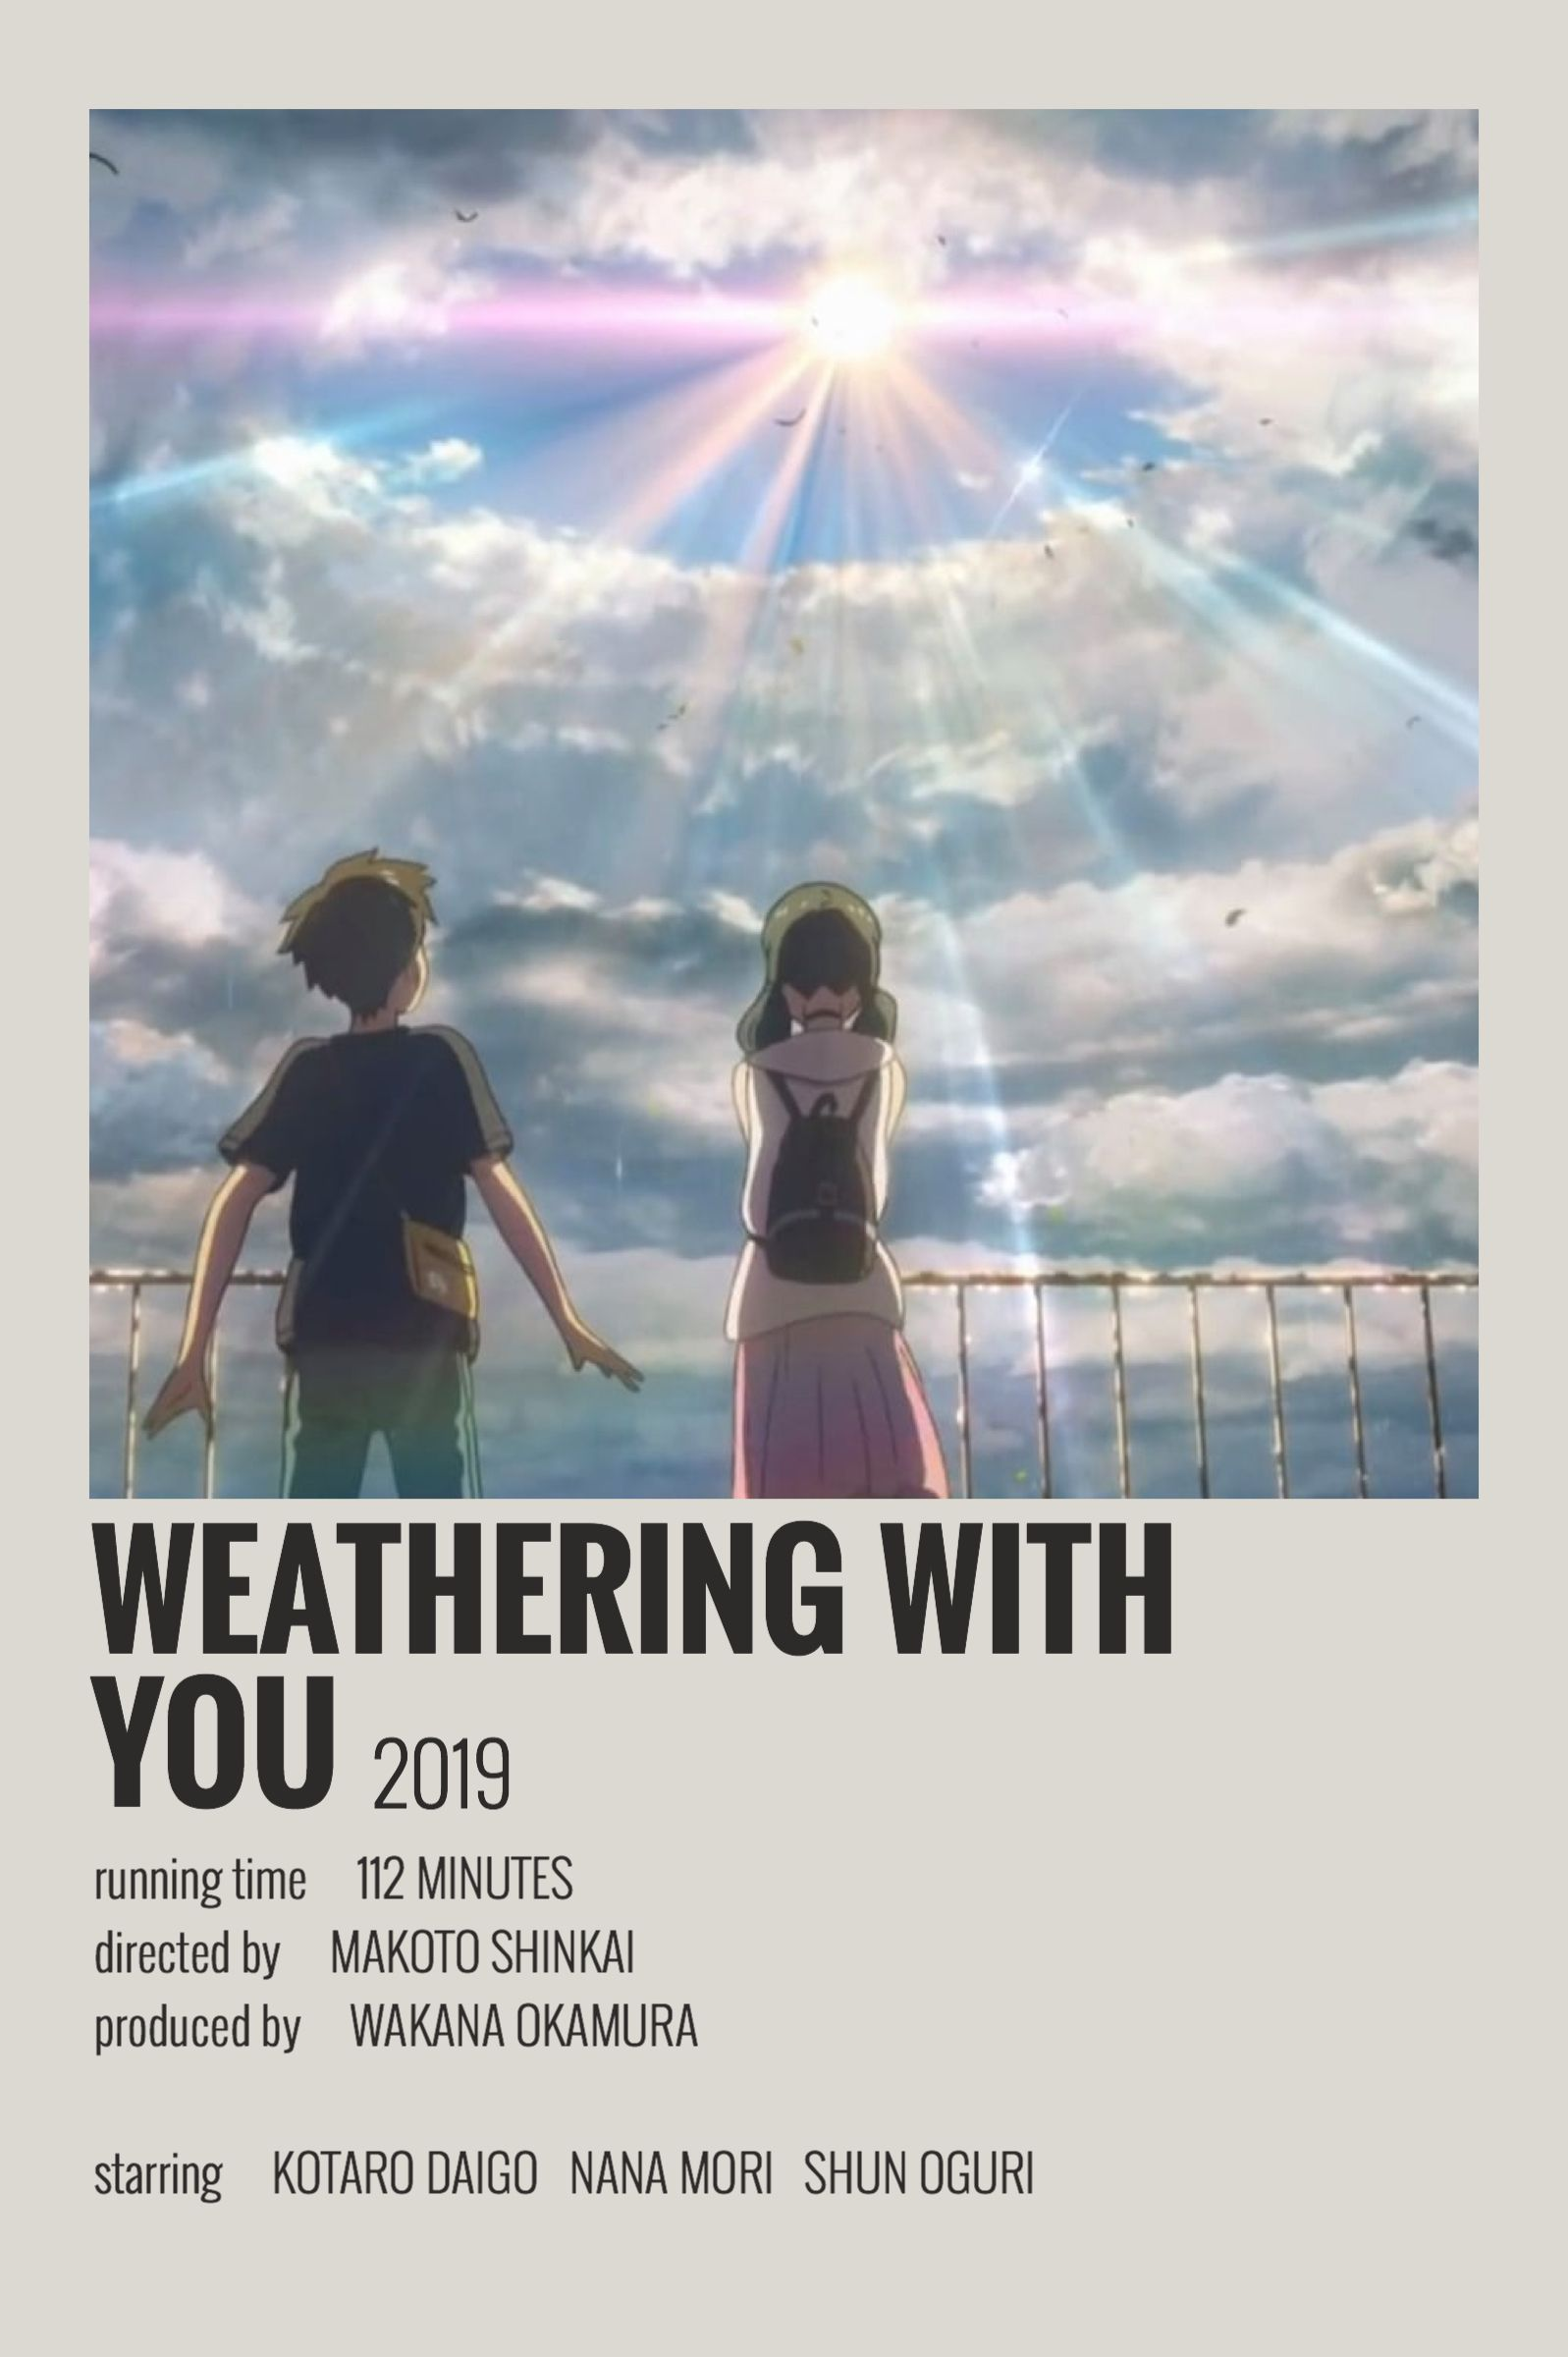 Weathering With You By Maja In 2020 Film Posters Minimalist Movie Posters Minimalist Movie Poster Wall